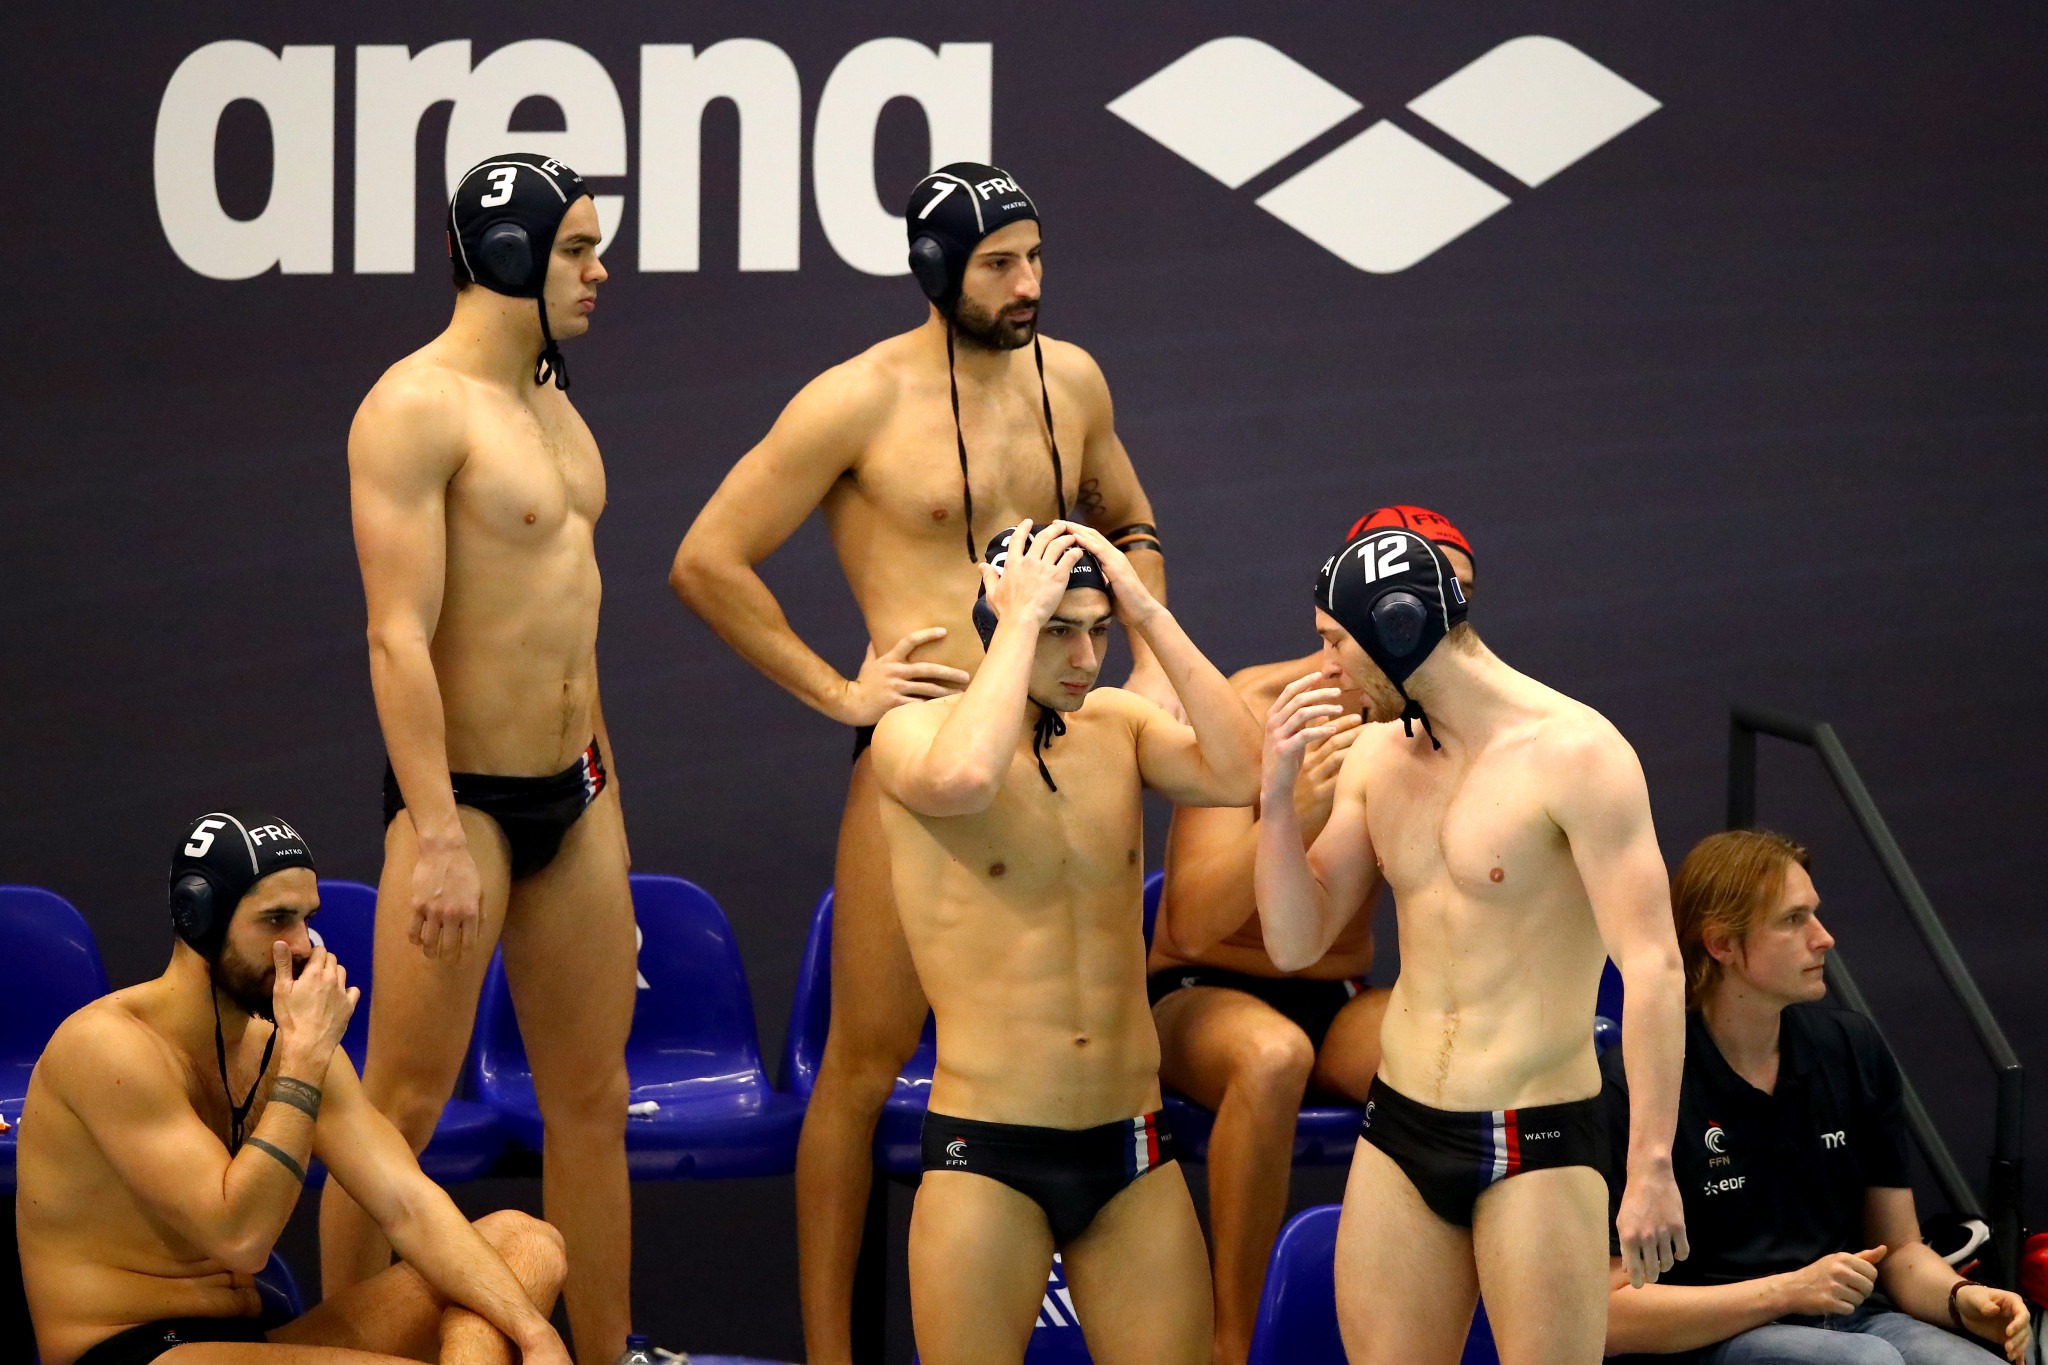 France beat Romania to keep Olympic water polo dream alive